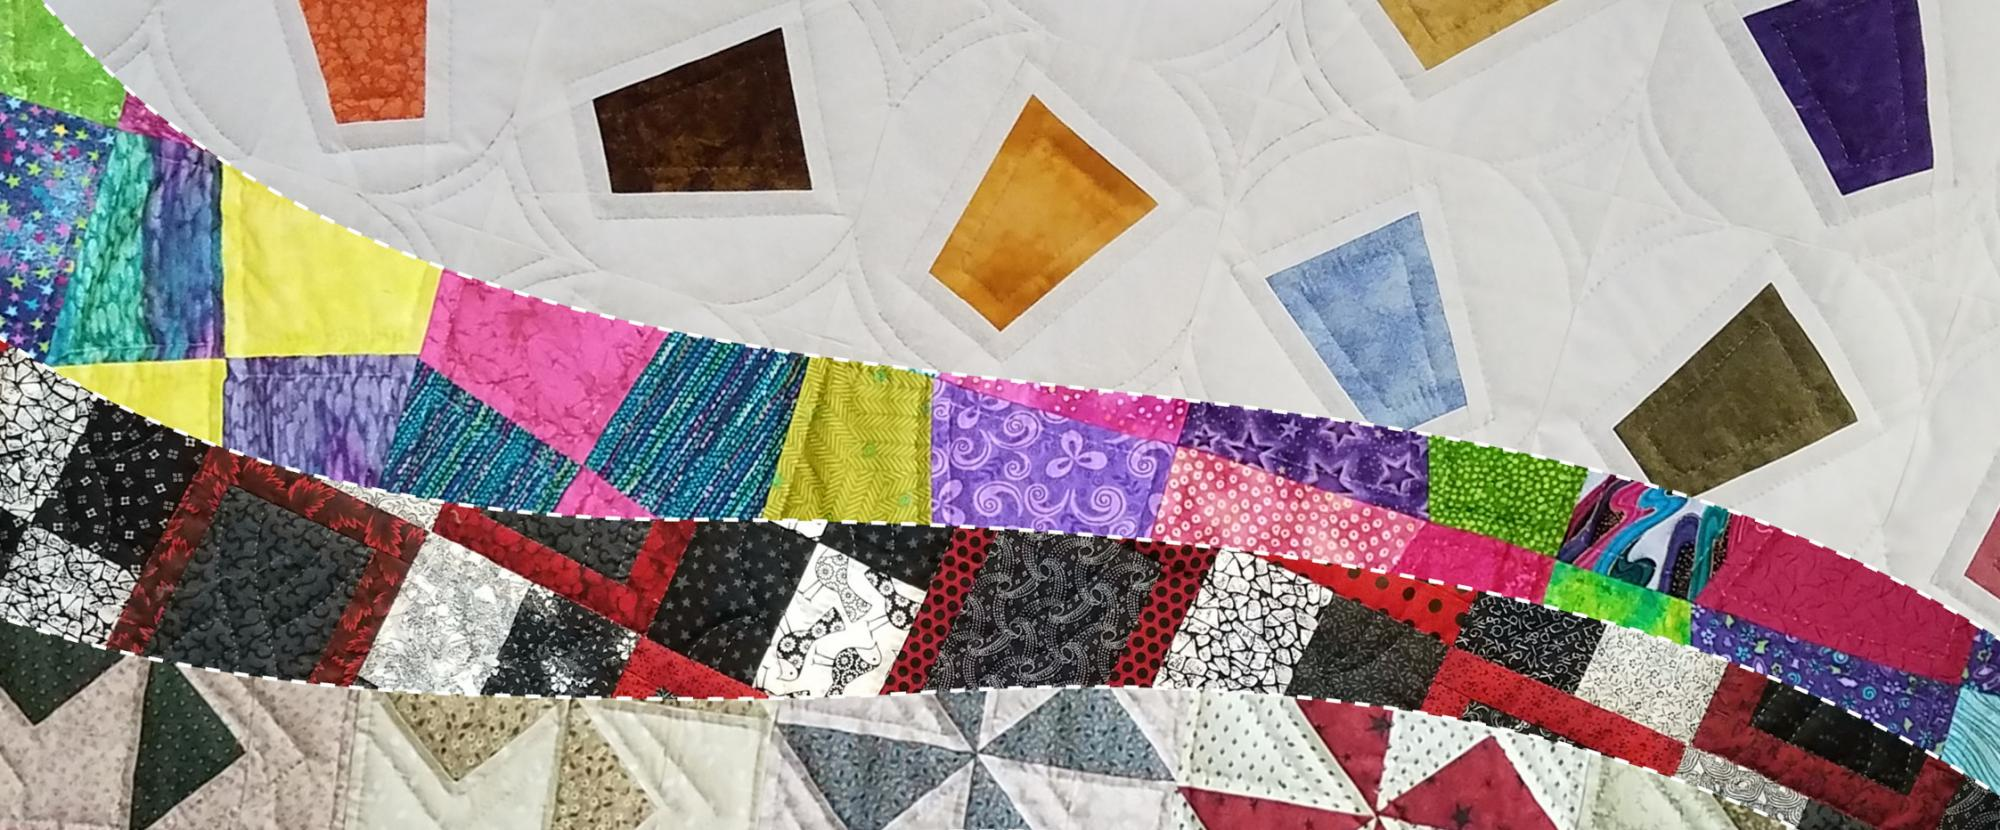 Quilt preview of the pa relief sale mennonite central committee us gumiabroncs Gallery